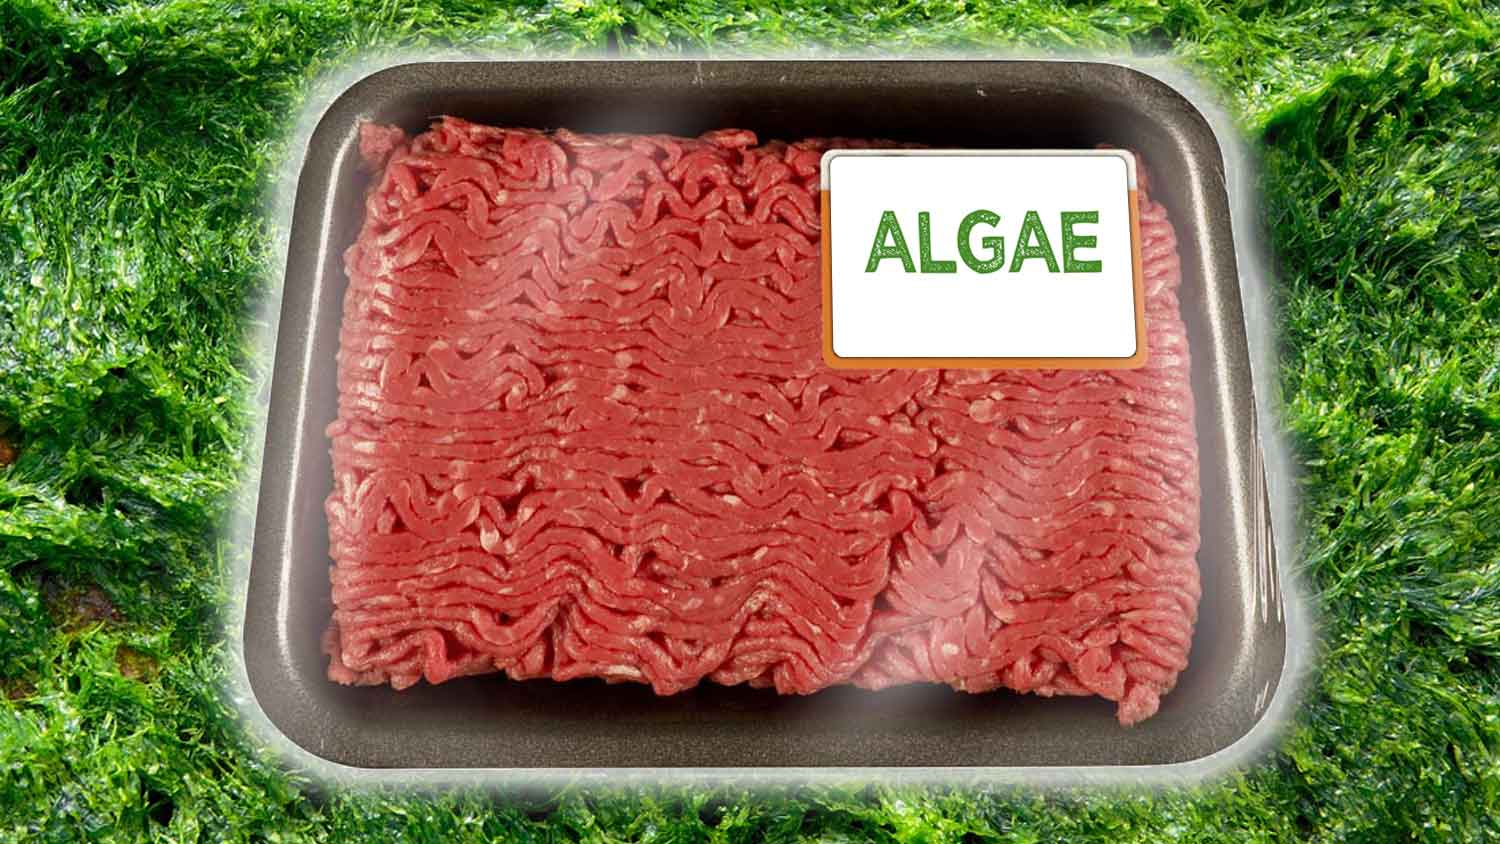 The Food of the Future Will All Be Made From Algae